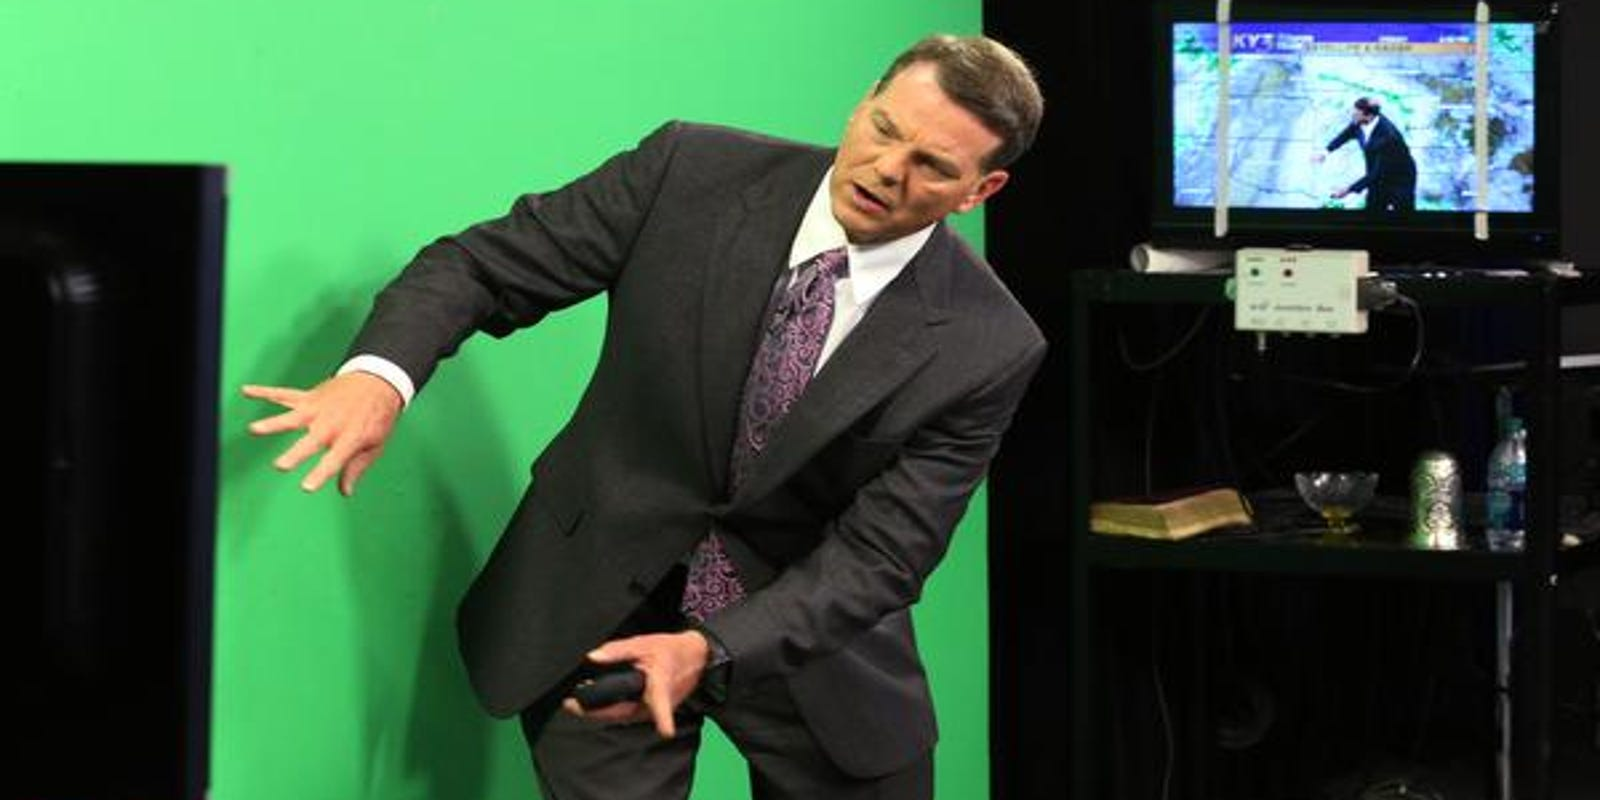 Weatherman Ron Hearst wore shorts on air  Here come the memes